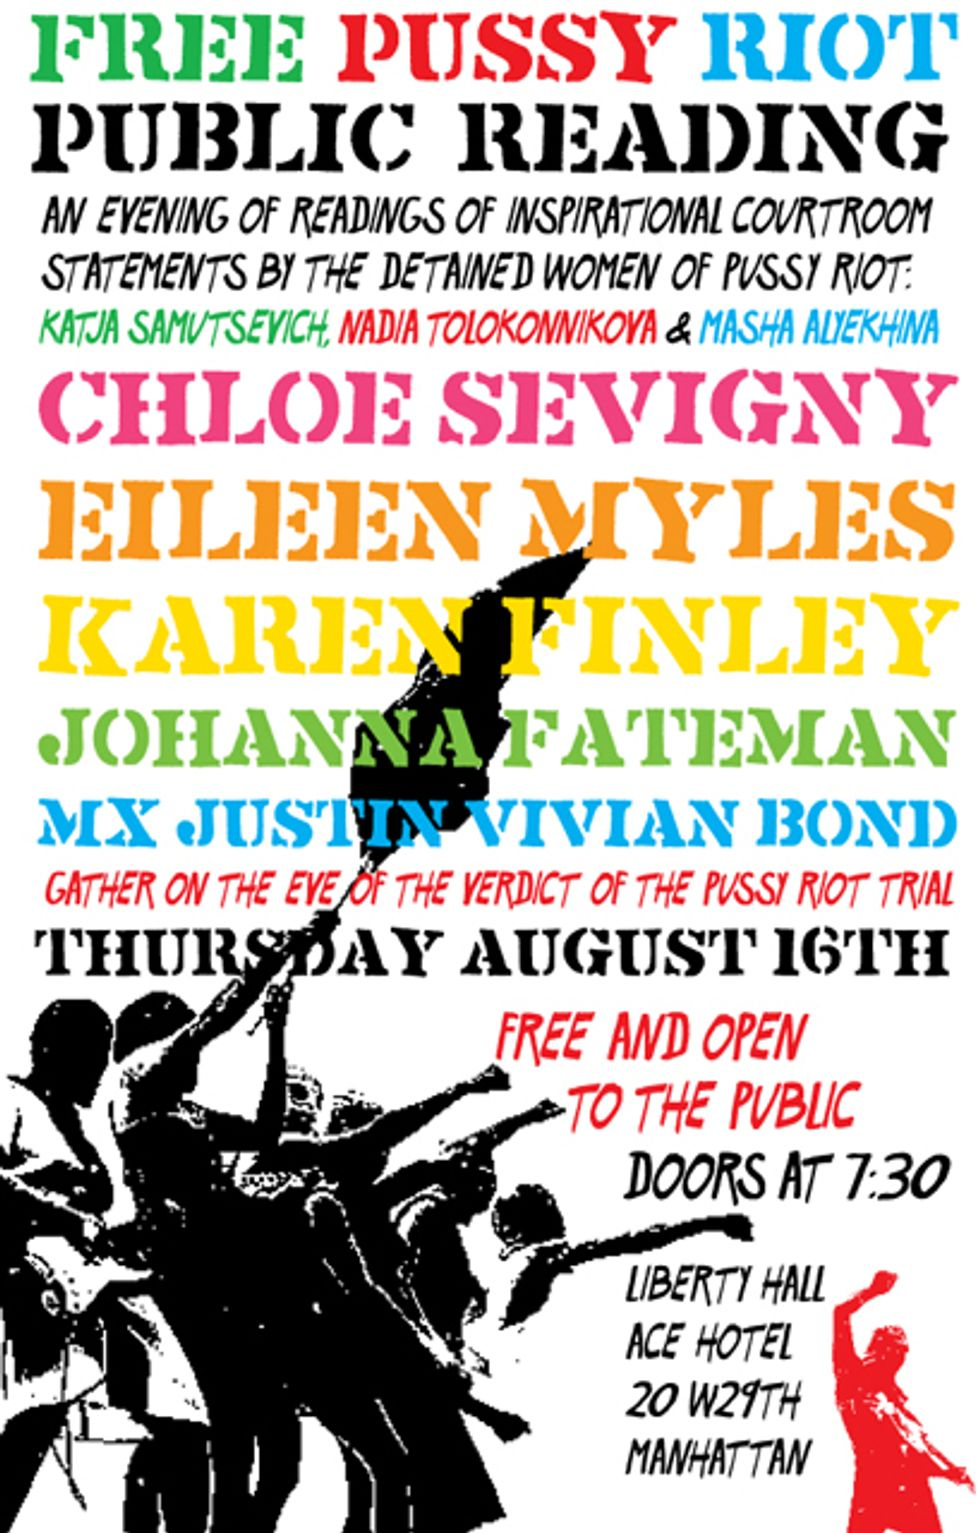 Chloe Sevigny, Mx Justin Vivian Bond + More Are Participating In a Public Reading In Support of Pussy Riot